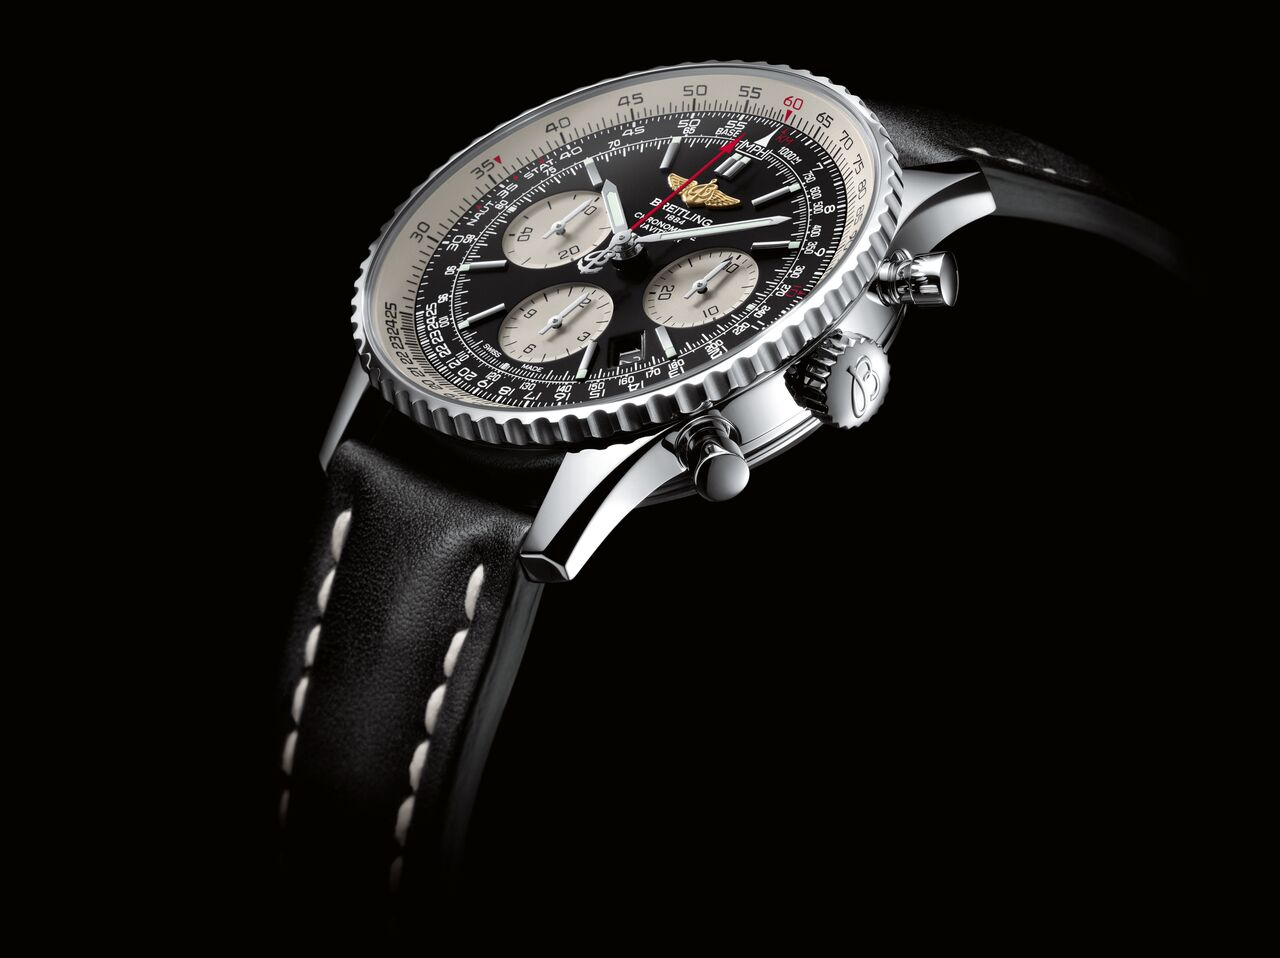 (breitling navitimer 01 watch. photo Courtesy of Breitling SA,  www.breitling.com )